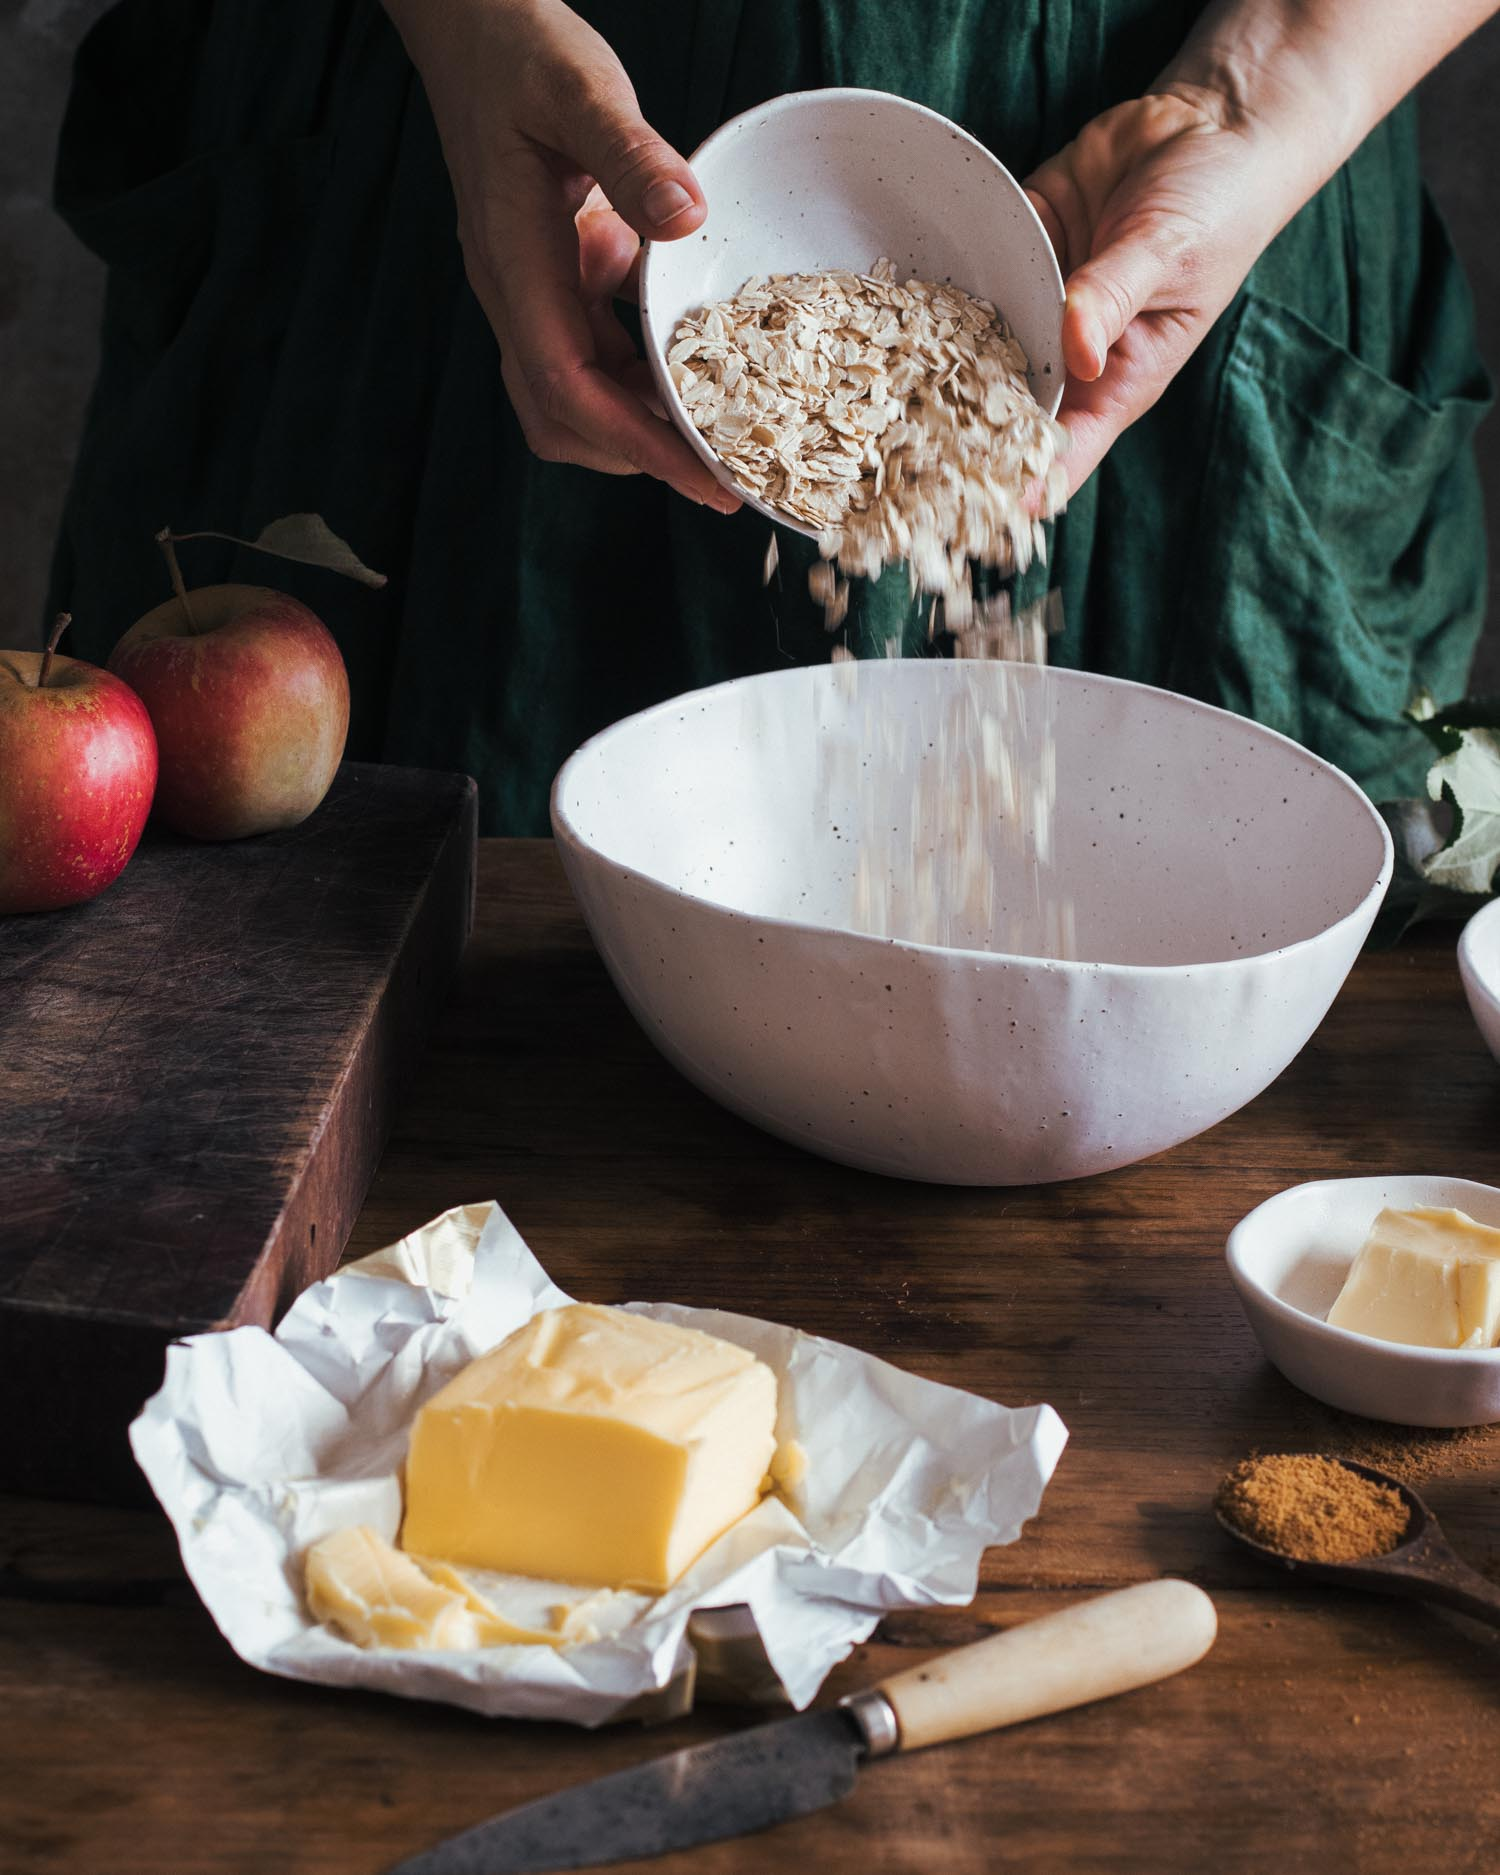 Pouring oats into a handmade ceramic mixing bowl